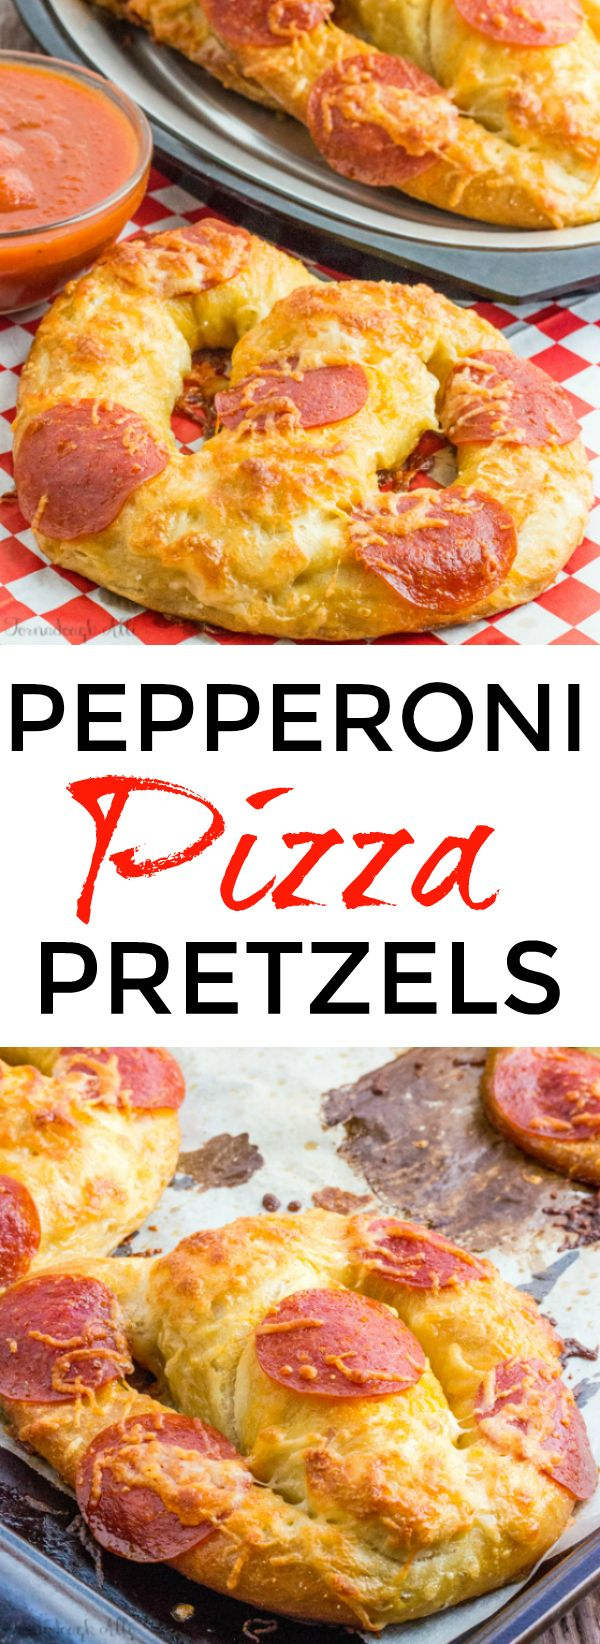 These Pepperoni Pizza Pretzels are soft and gooey and loaded with cheesy goodness making them a delicious snack for everyone to enjoy!